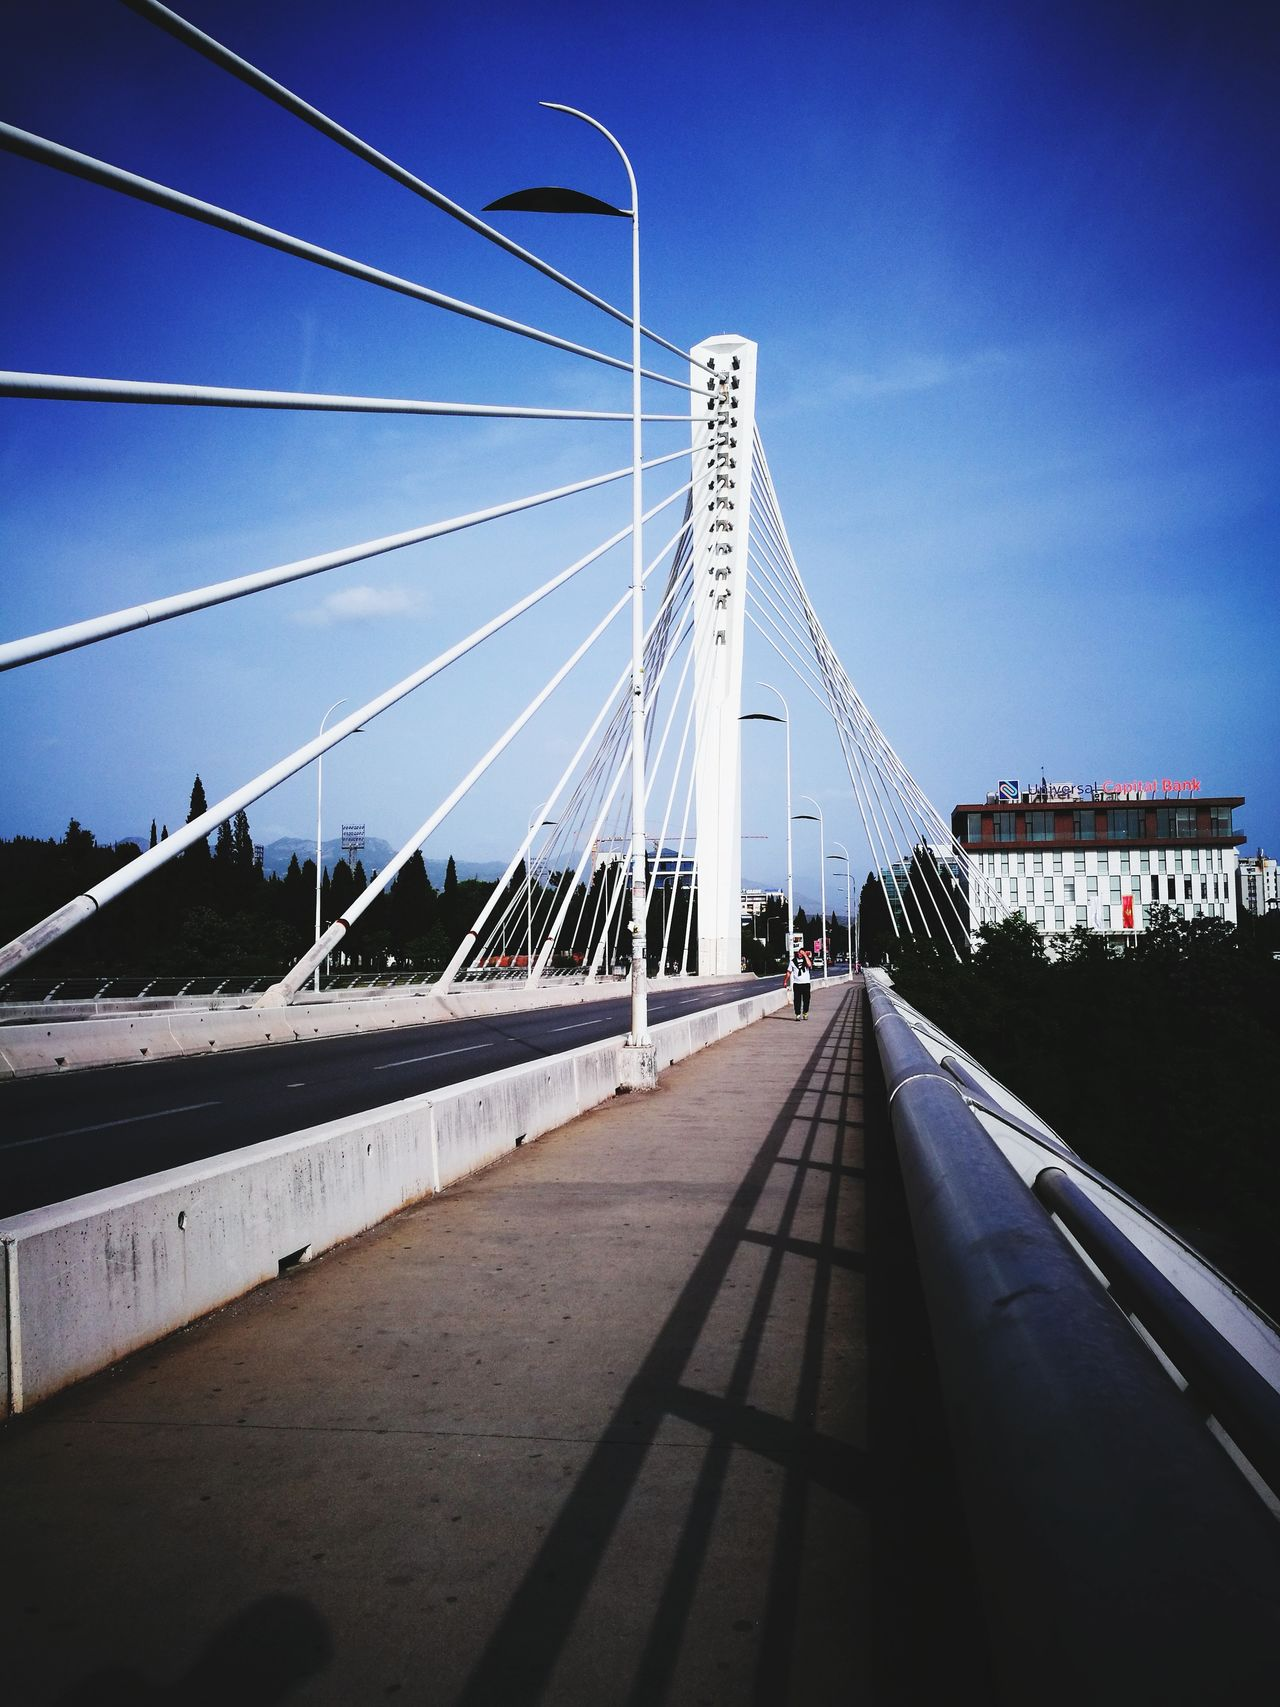 Bridge - Man Made Structure Connection Suspension Bridge Architecture Sky Outdoors Road Travel Destinations Day Built Structure Transportation City No People Curve Landscape Cityscape Water EyEmNewHere Podgorica Montenegro Podgorica, Montenegro Cityscape Low Angle View Sunset The Architect - 2017 EyeEm Awards